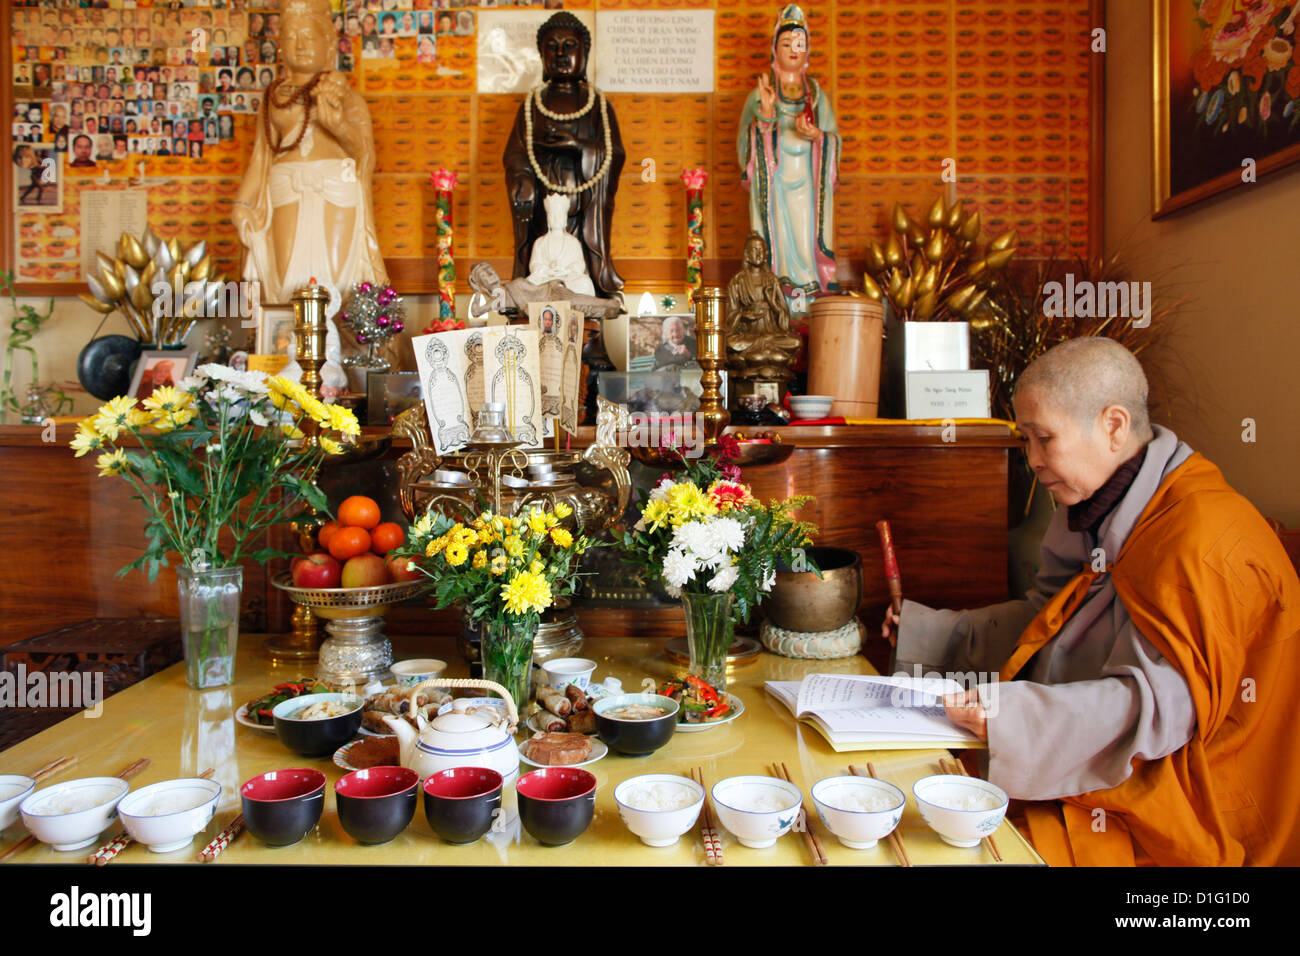 Buddhist ceremony at Ancestors' altar, Tu An Buddhist temple, Saint-Pierre-en-Faucigny, Haute Savoie, France, - Stock Image